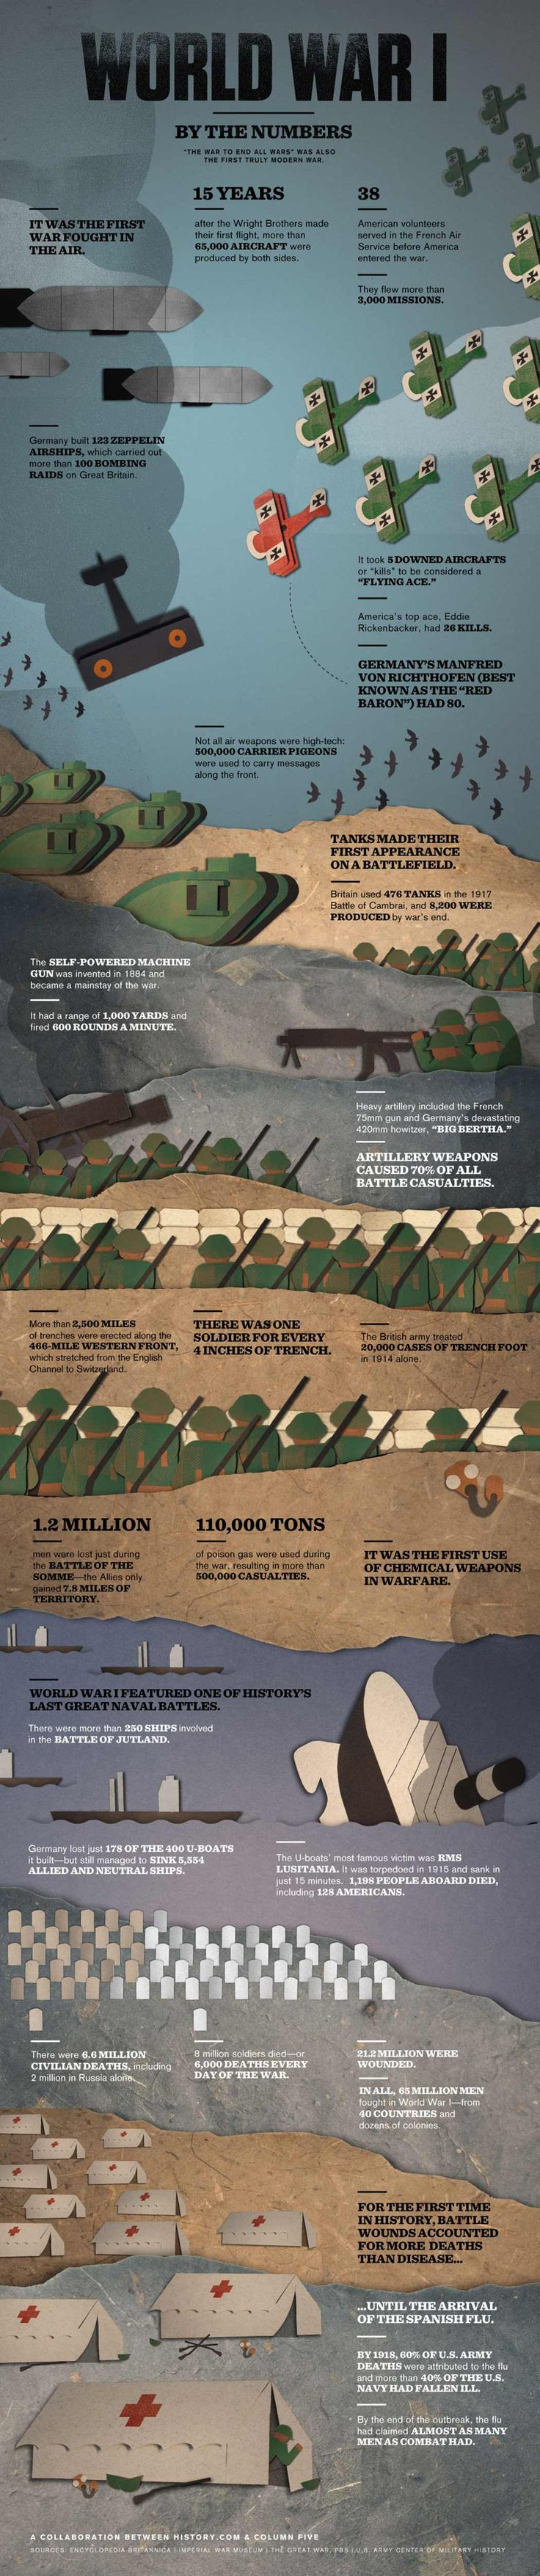 ww1-by-numbers